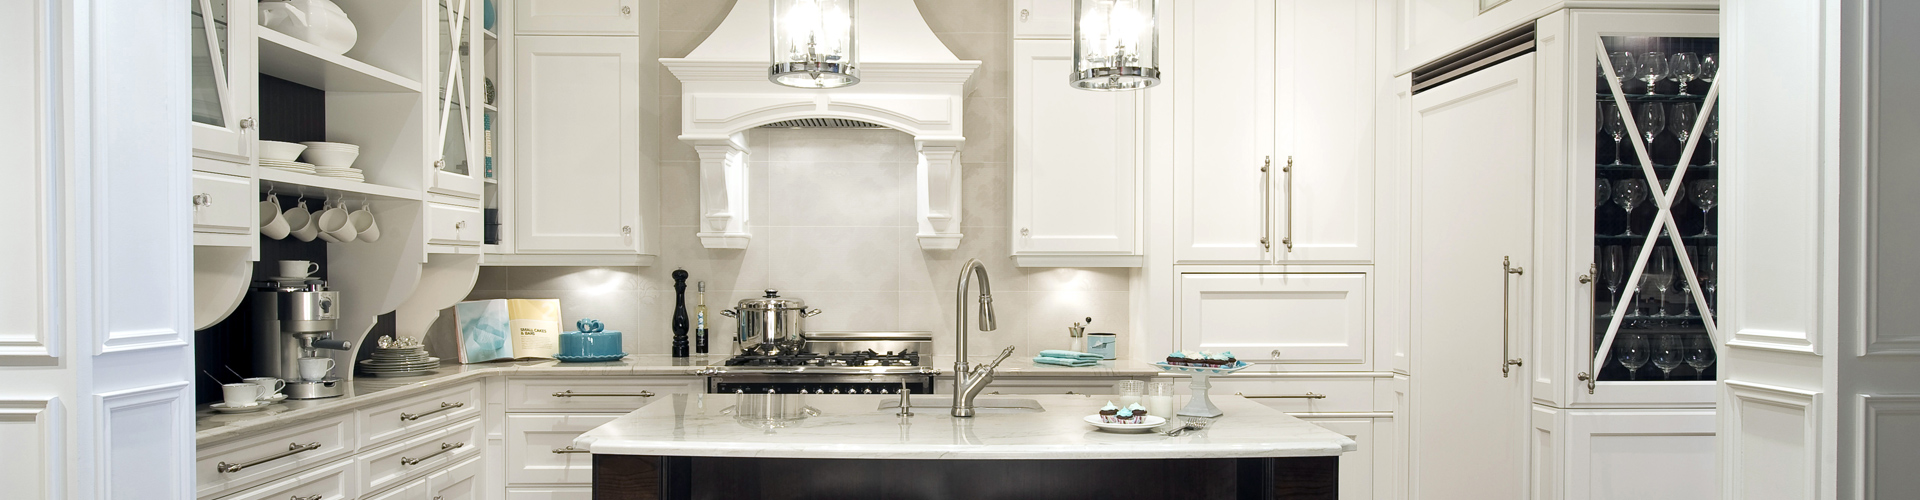 Castle KitchensCastle Kitchens Markham for Custom Kitchen Cabinetry ...